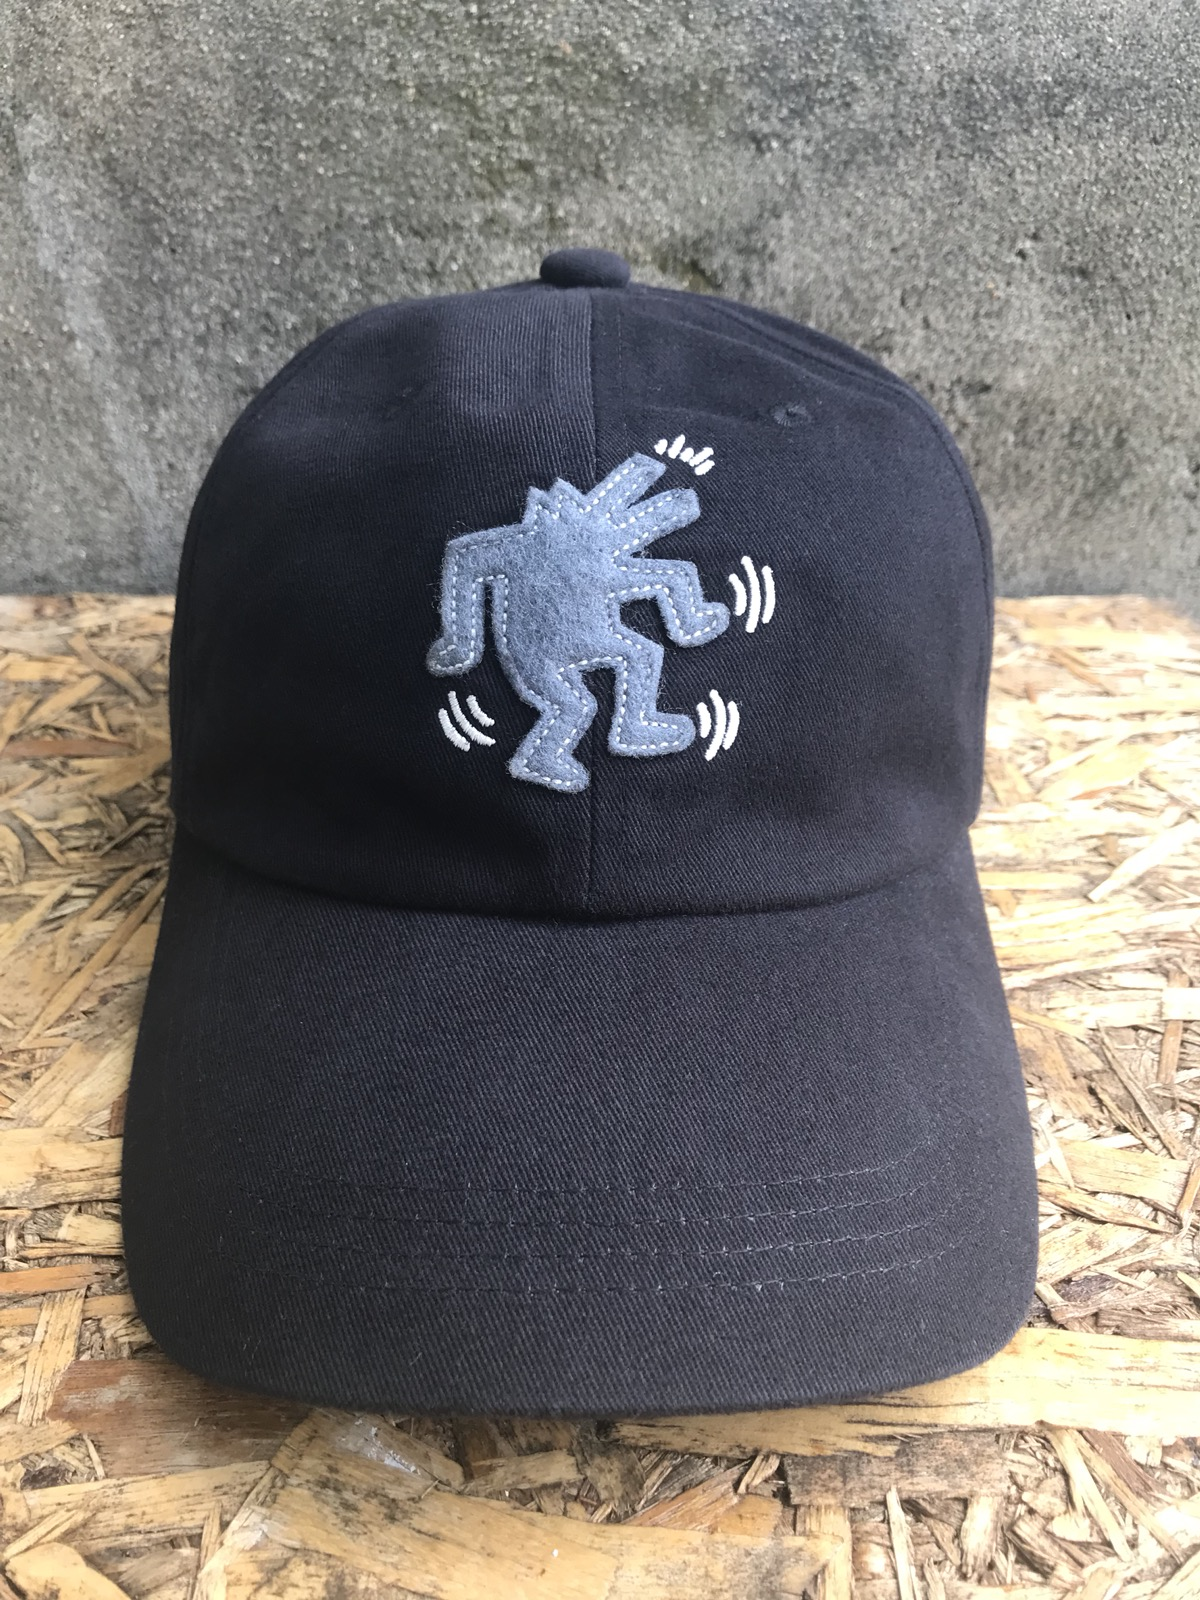 Uniqlo Keith Haring x Uniqlo Baseball Hats Size one size - Hats for ... ad7aa29a065